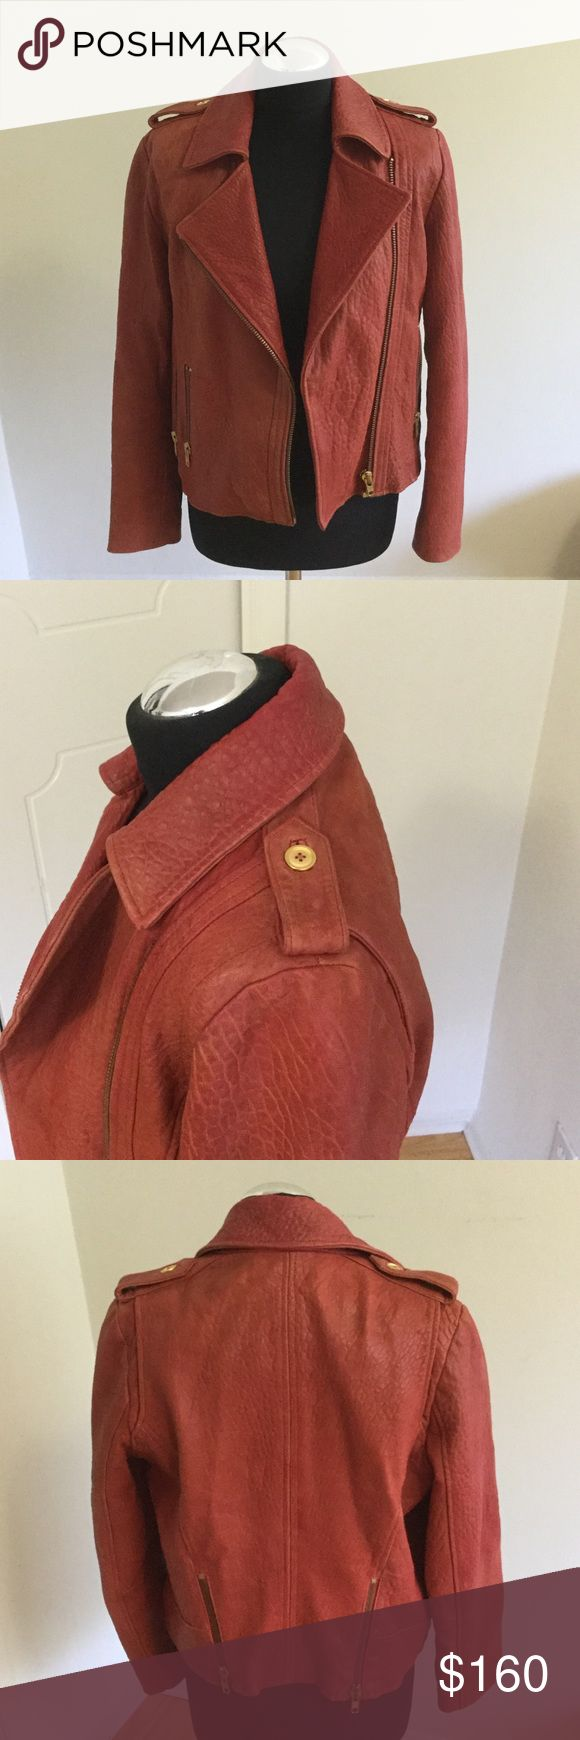 Reiss leather motor jacket Faded salmon color, size M. Beautiful strong, but not stiff leather with gold accessories. Reiss Jackets & Coats